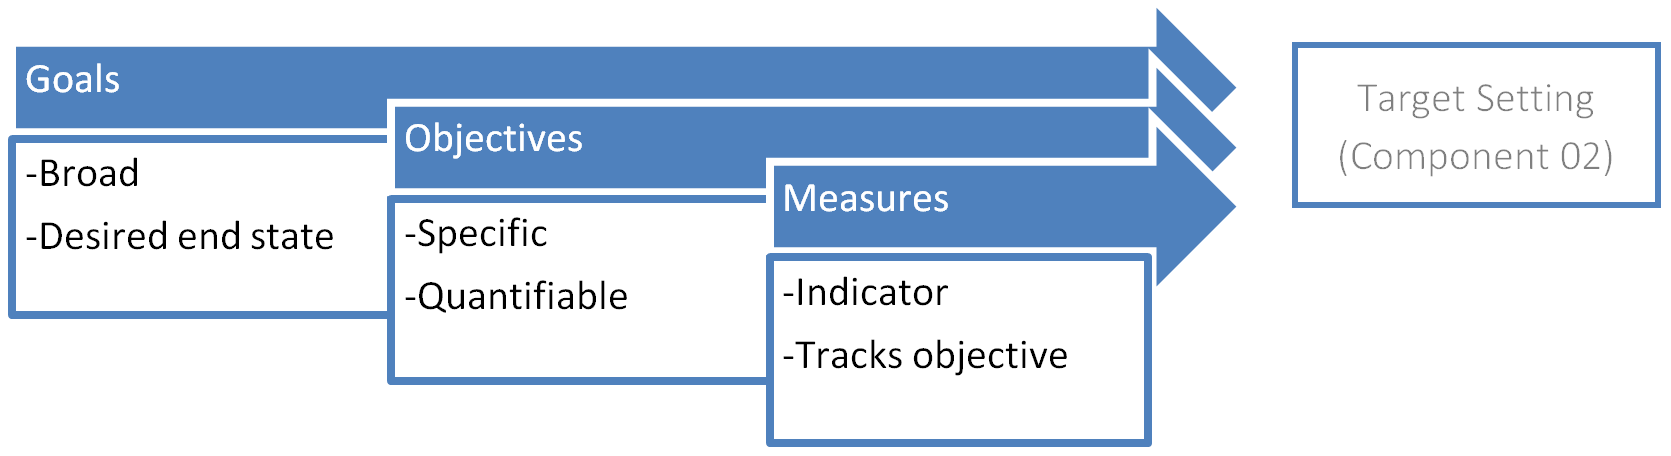 Formation of goals and objectives progresses from goals, which are broad and describe a desired end state, to objectives, which are specific and quantifiable, to measures, which are indicators that track objectives. These lead to target setting (Component 02).